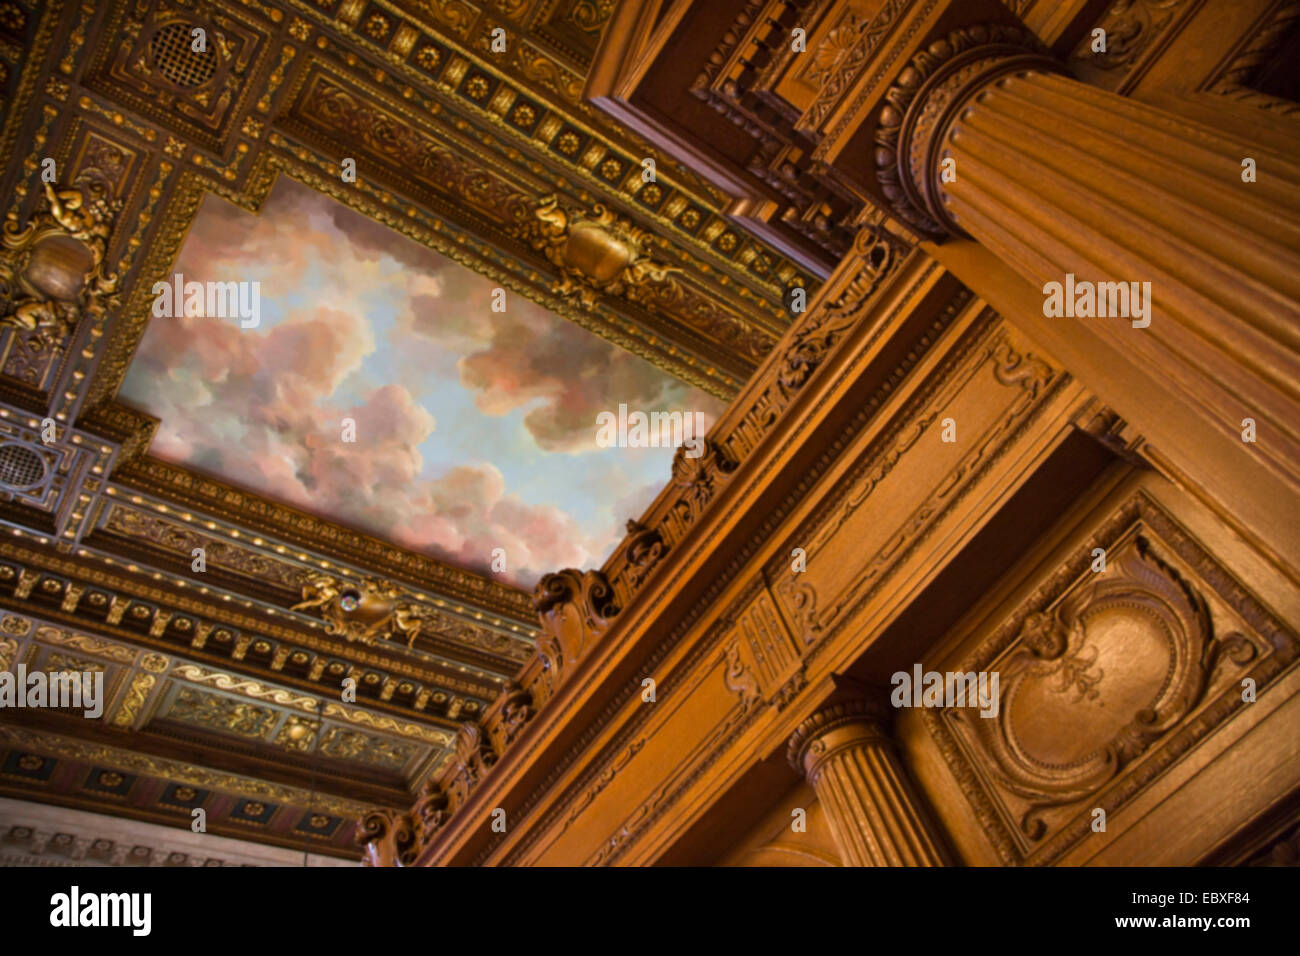 CEILING MURAL and WOODWORK - ROSE READING ROOM - NEW YORK CITY PUBLIC LIBRARY, USA, New York City - Stock Image